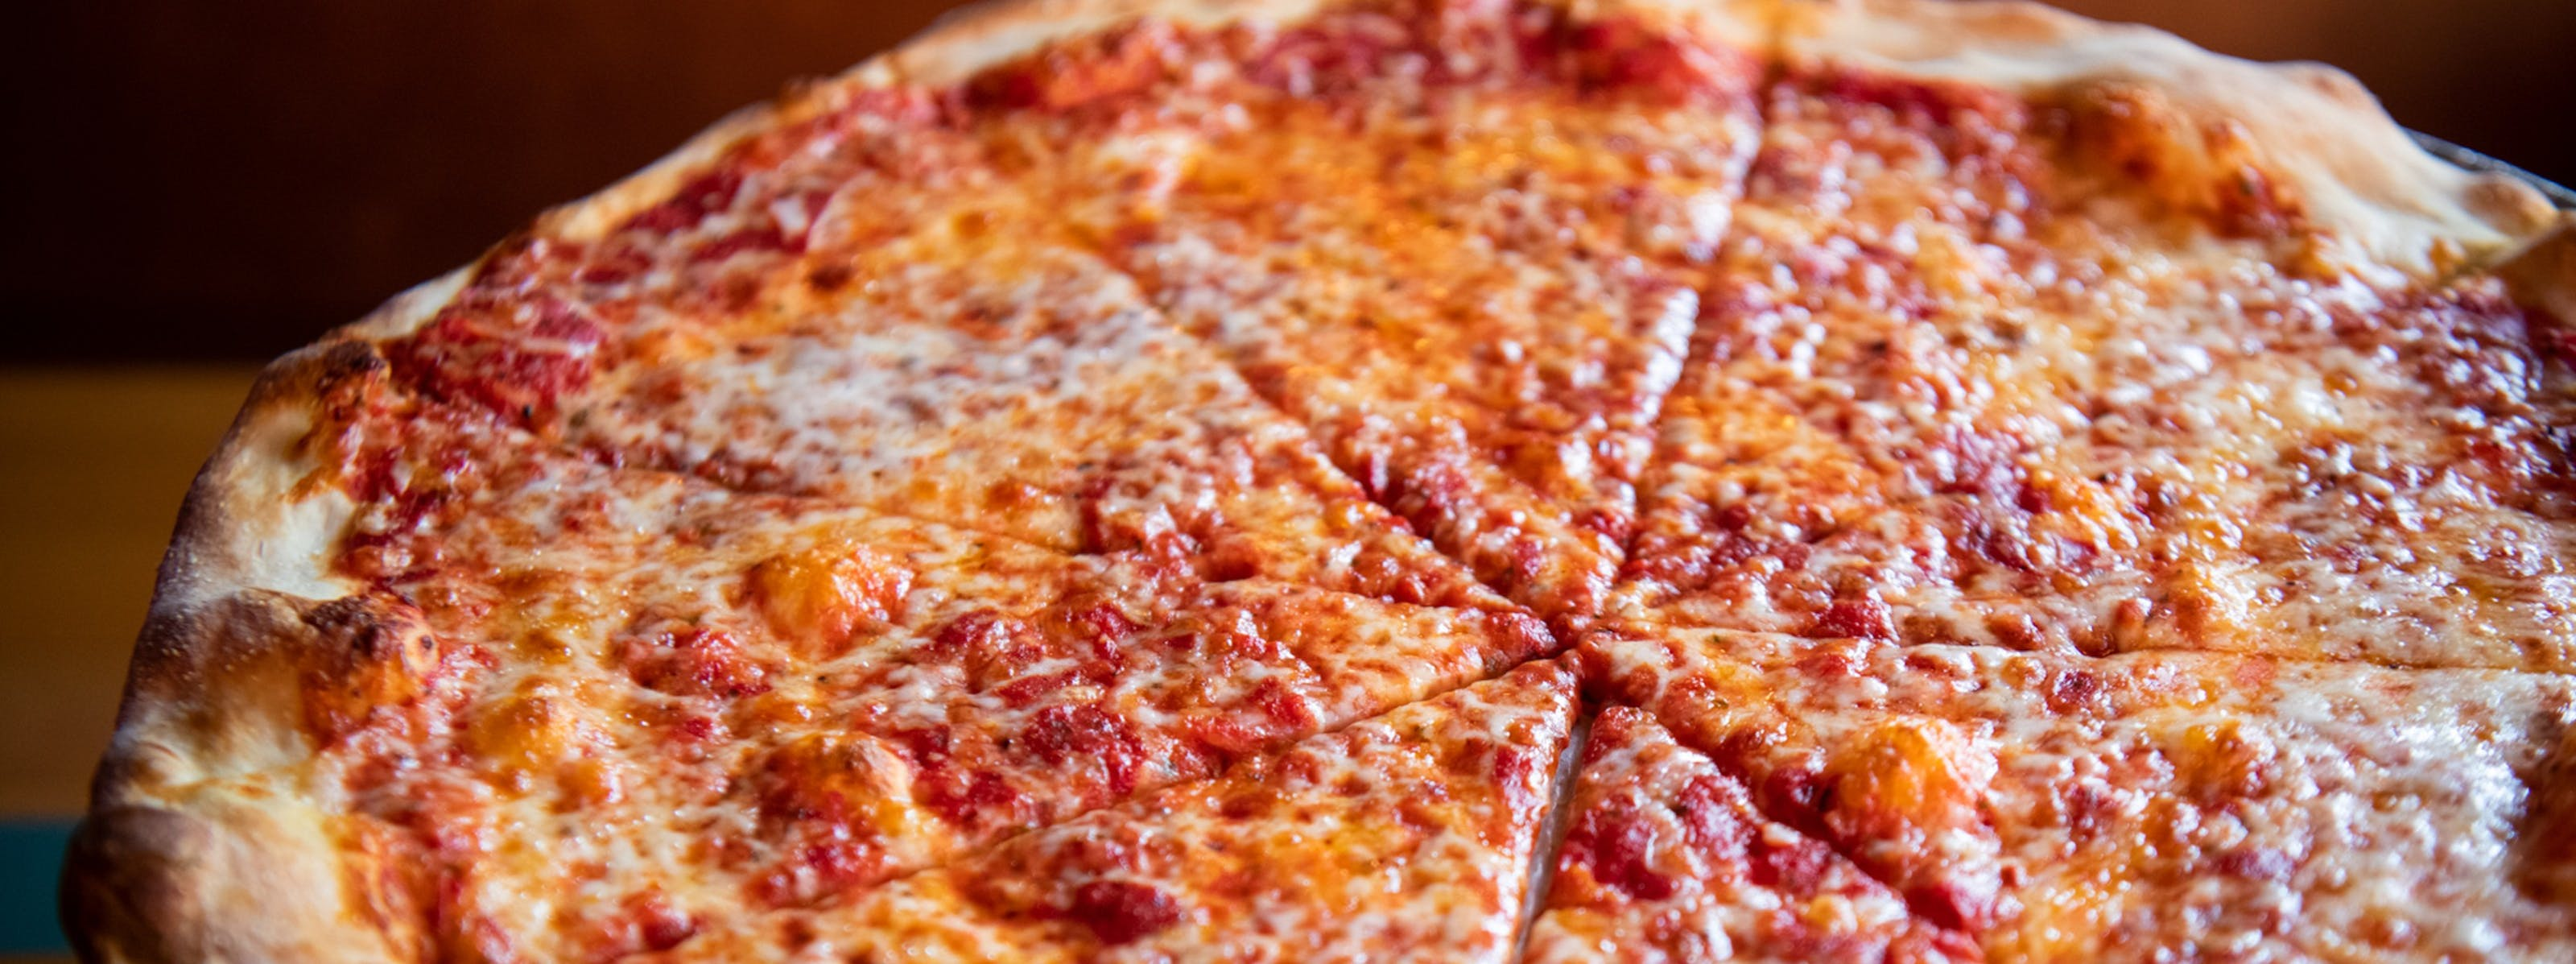 Where To Get Pizza Delivery In Seattle - Seattle - The Infatuation